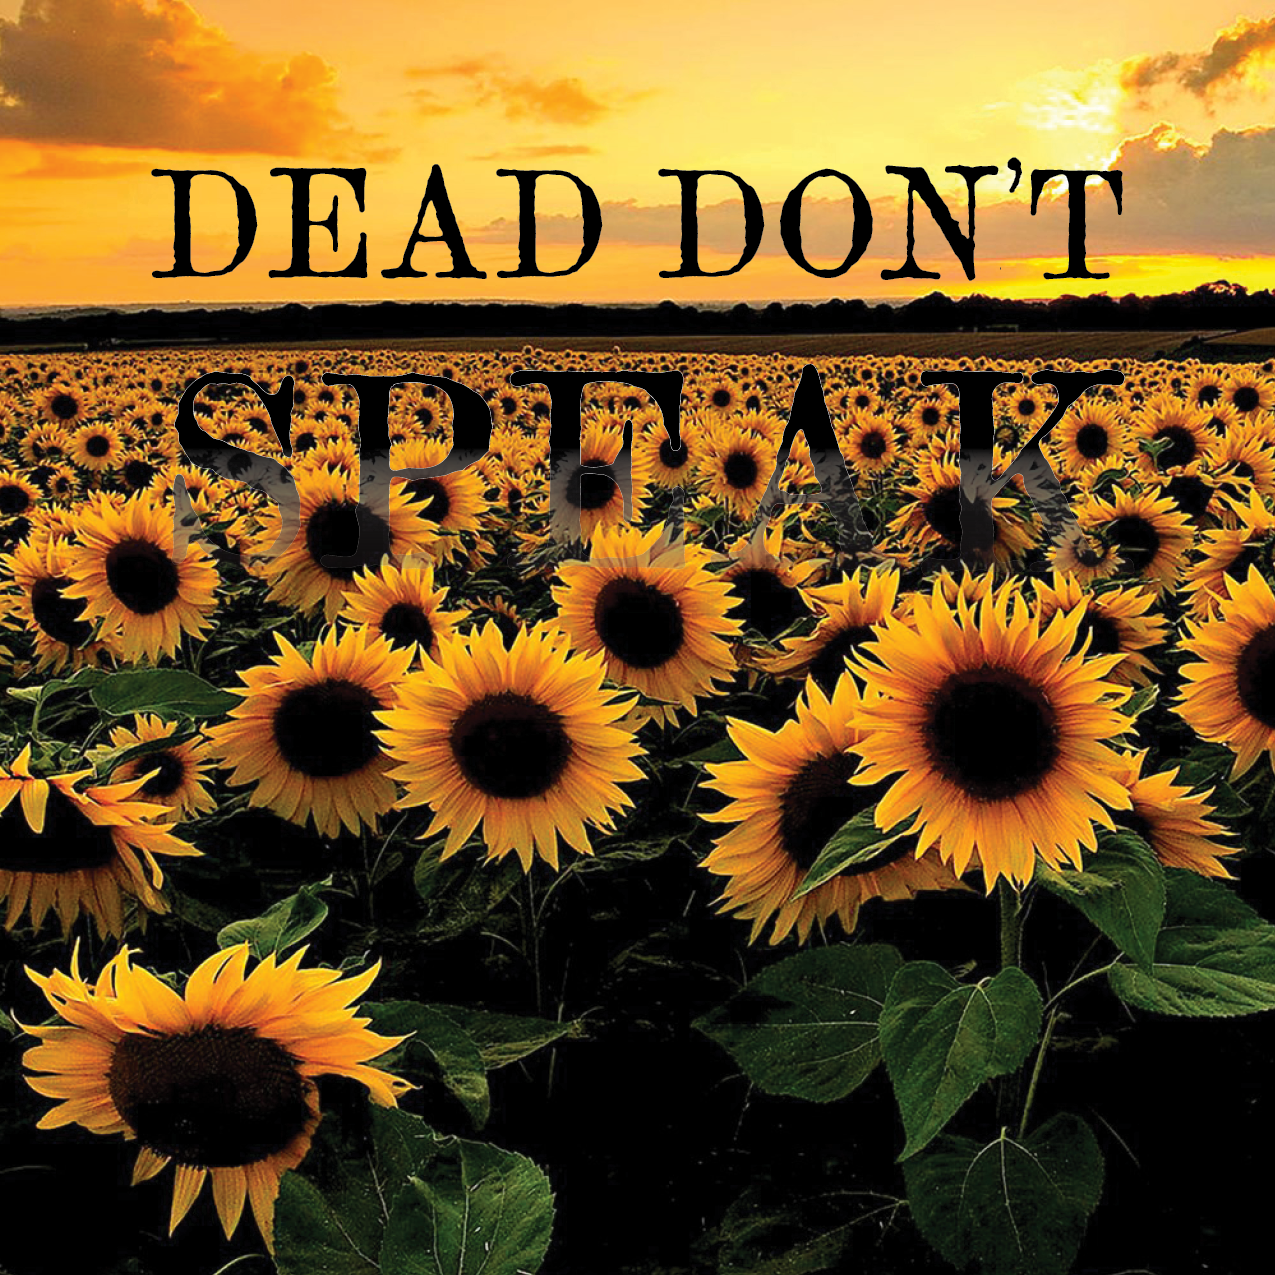 DEAD DON'T SPEAK - A feature-length crime thriller.NEW. When a young woman goes missing from a 1950s ranching town, an obsessive deputy's investigation leads to a history of abducted girls and forces the deputy to confront her own complicated past. COMPS: Silence of the Lambs, ZodiacSELECT ACCOLADES2019 QUARTER-FINALIST | NICHOLL FELLOWSHIP2019 TOP 5 FINALIST | ROADMAP JUMPSTART WRITING COMPETITION2019 SECOND ROUNDER | AUSTIN FILM FESTIVAL